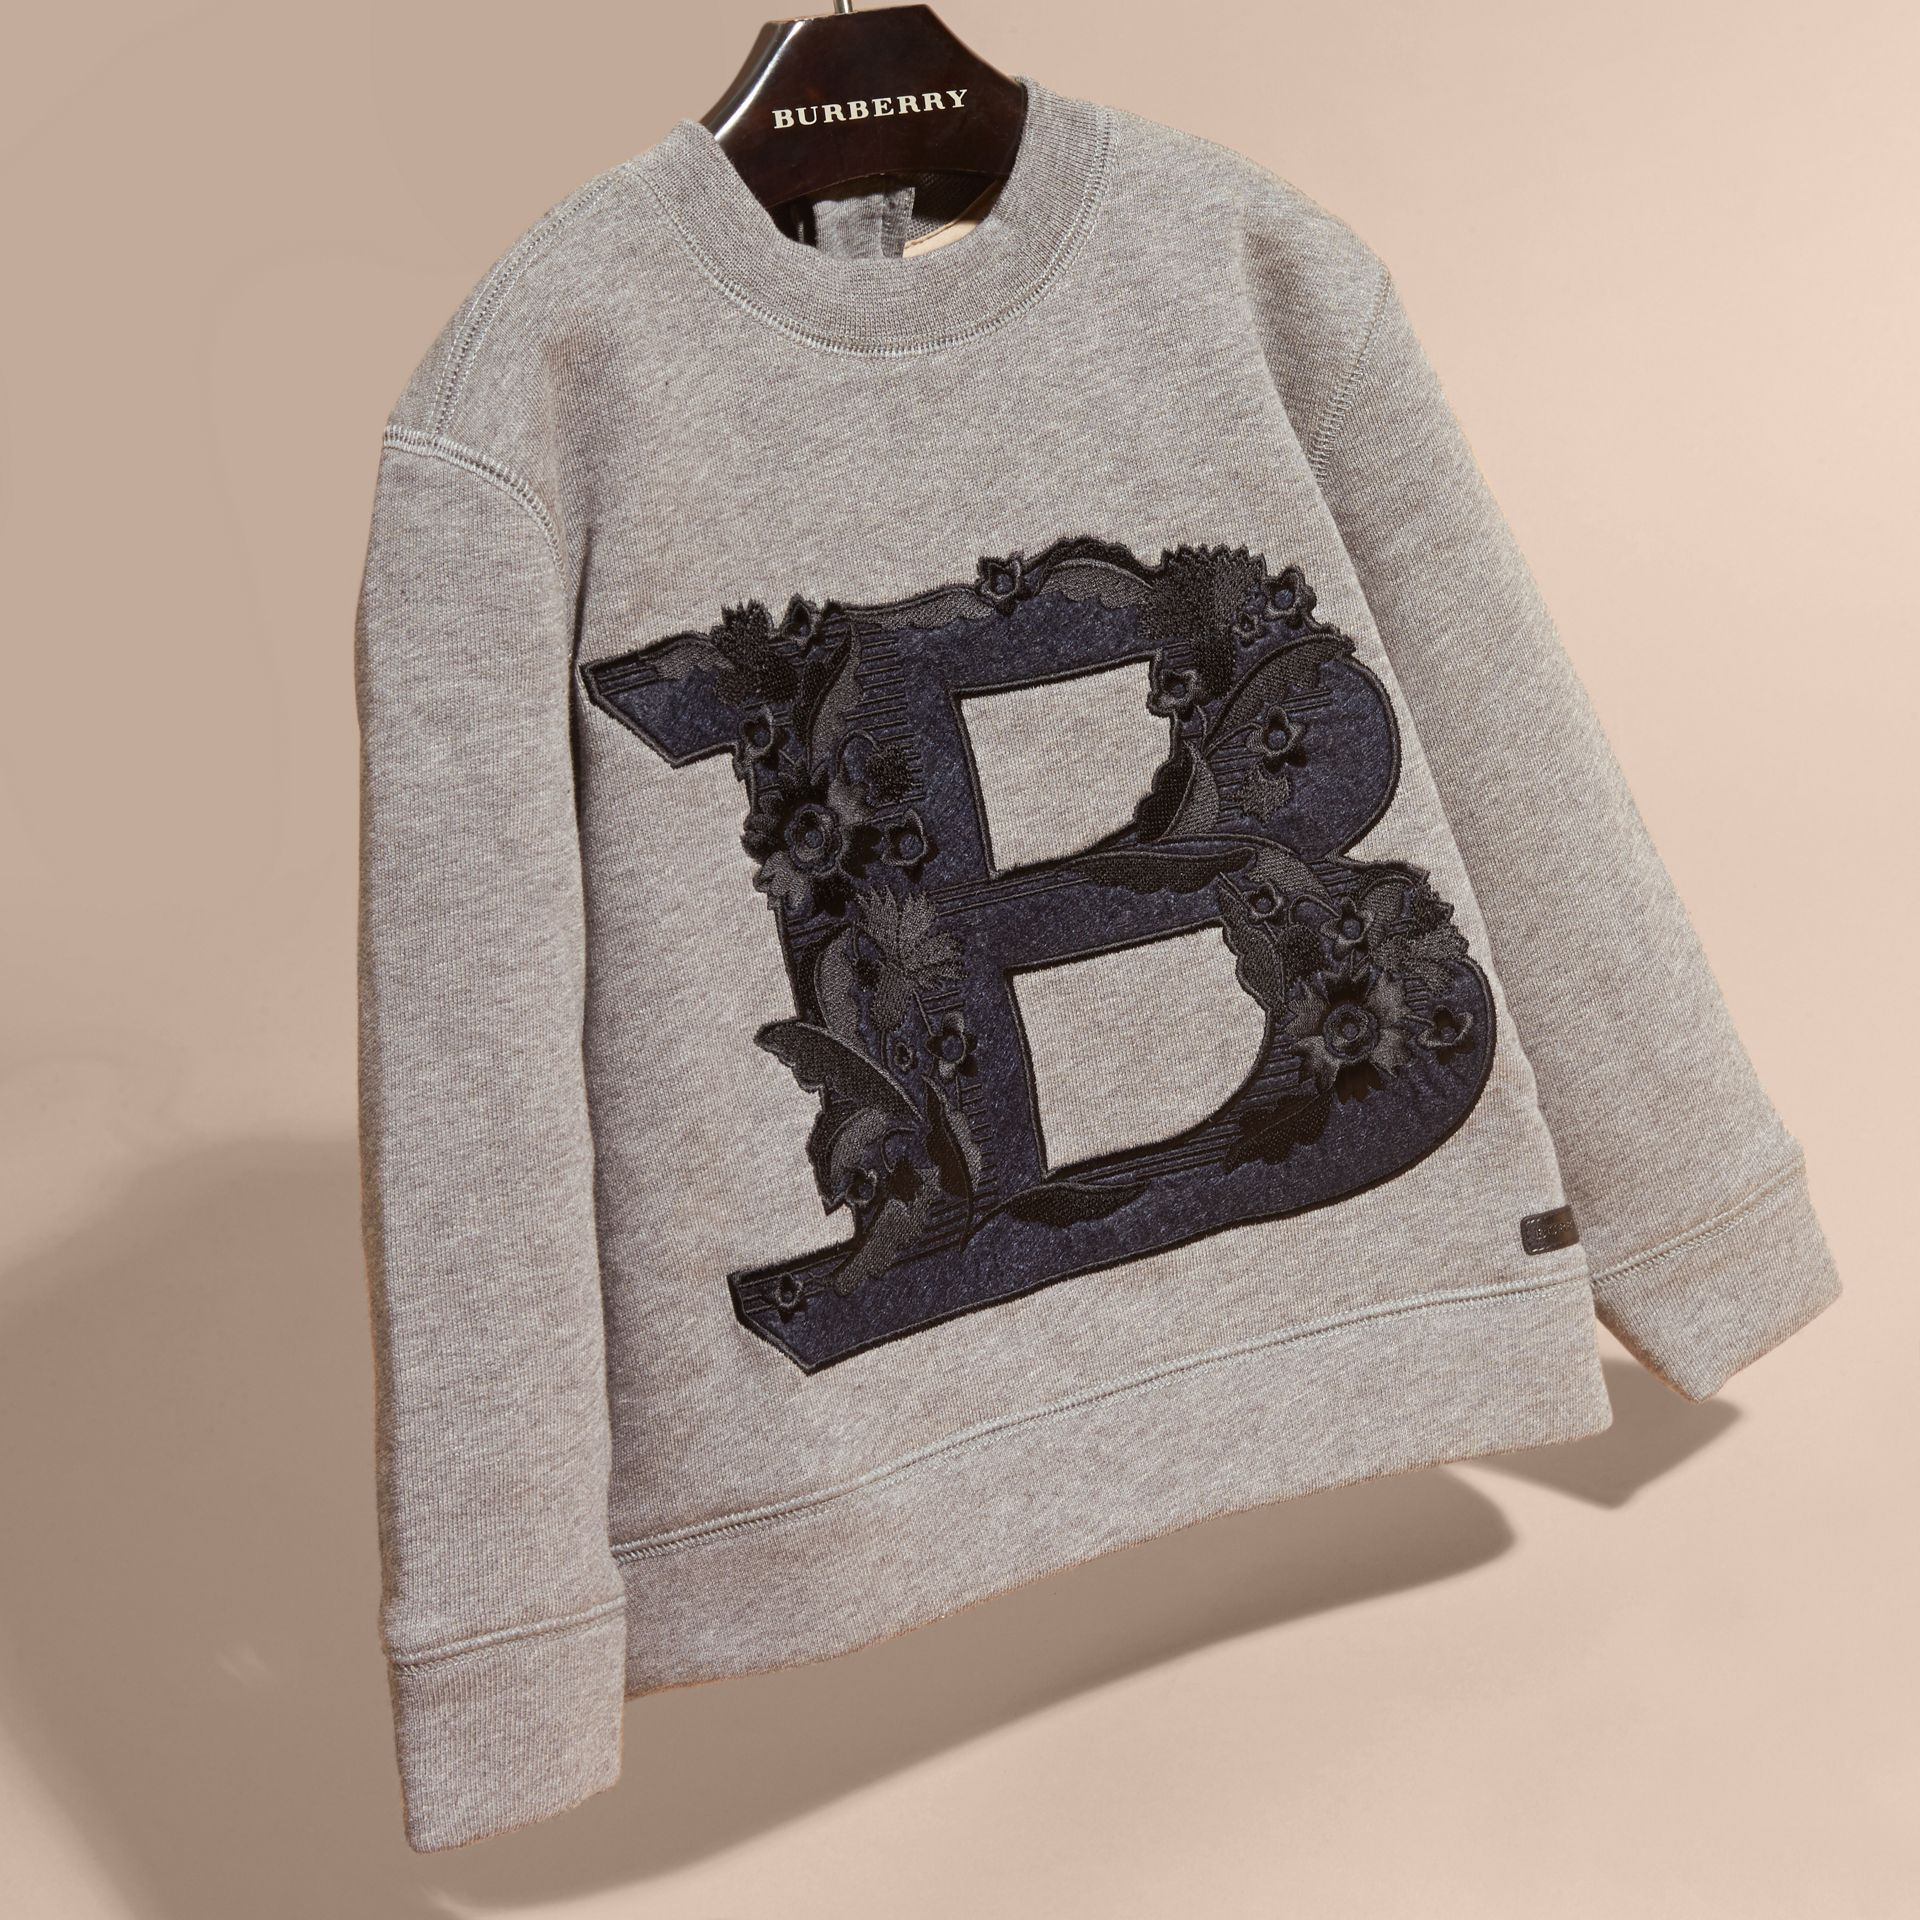 Mid grey melange Embroidered Decorative Letter Motif Cotton Jersey Sweatshirt - gallery image 3